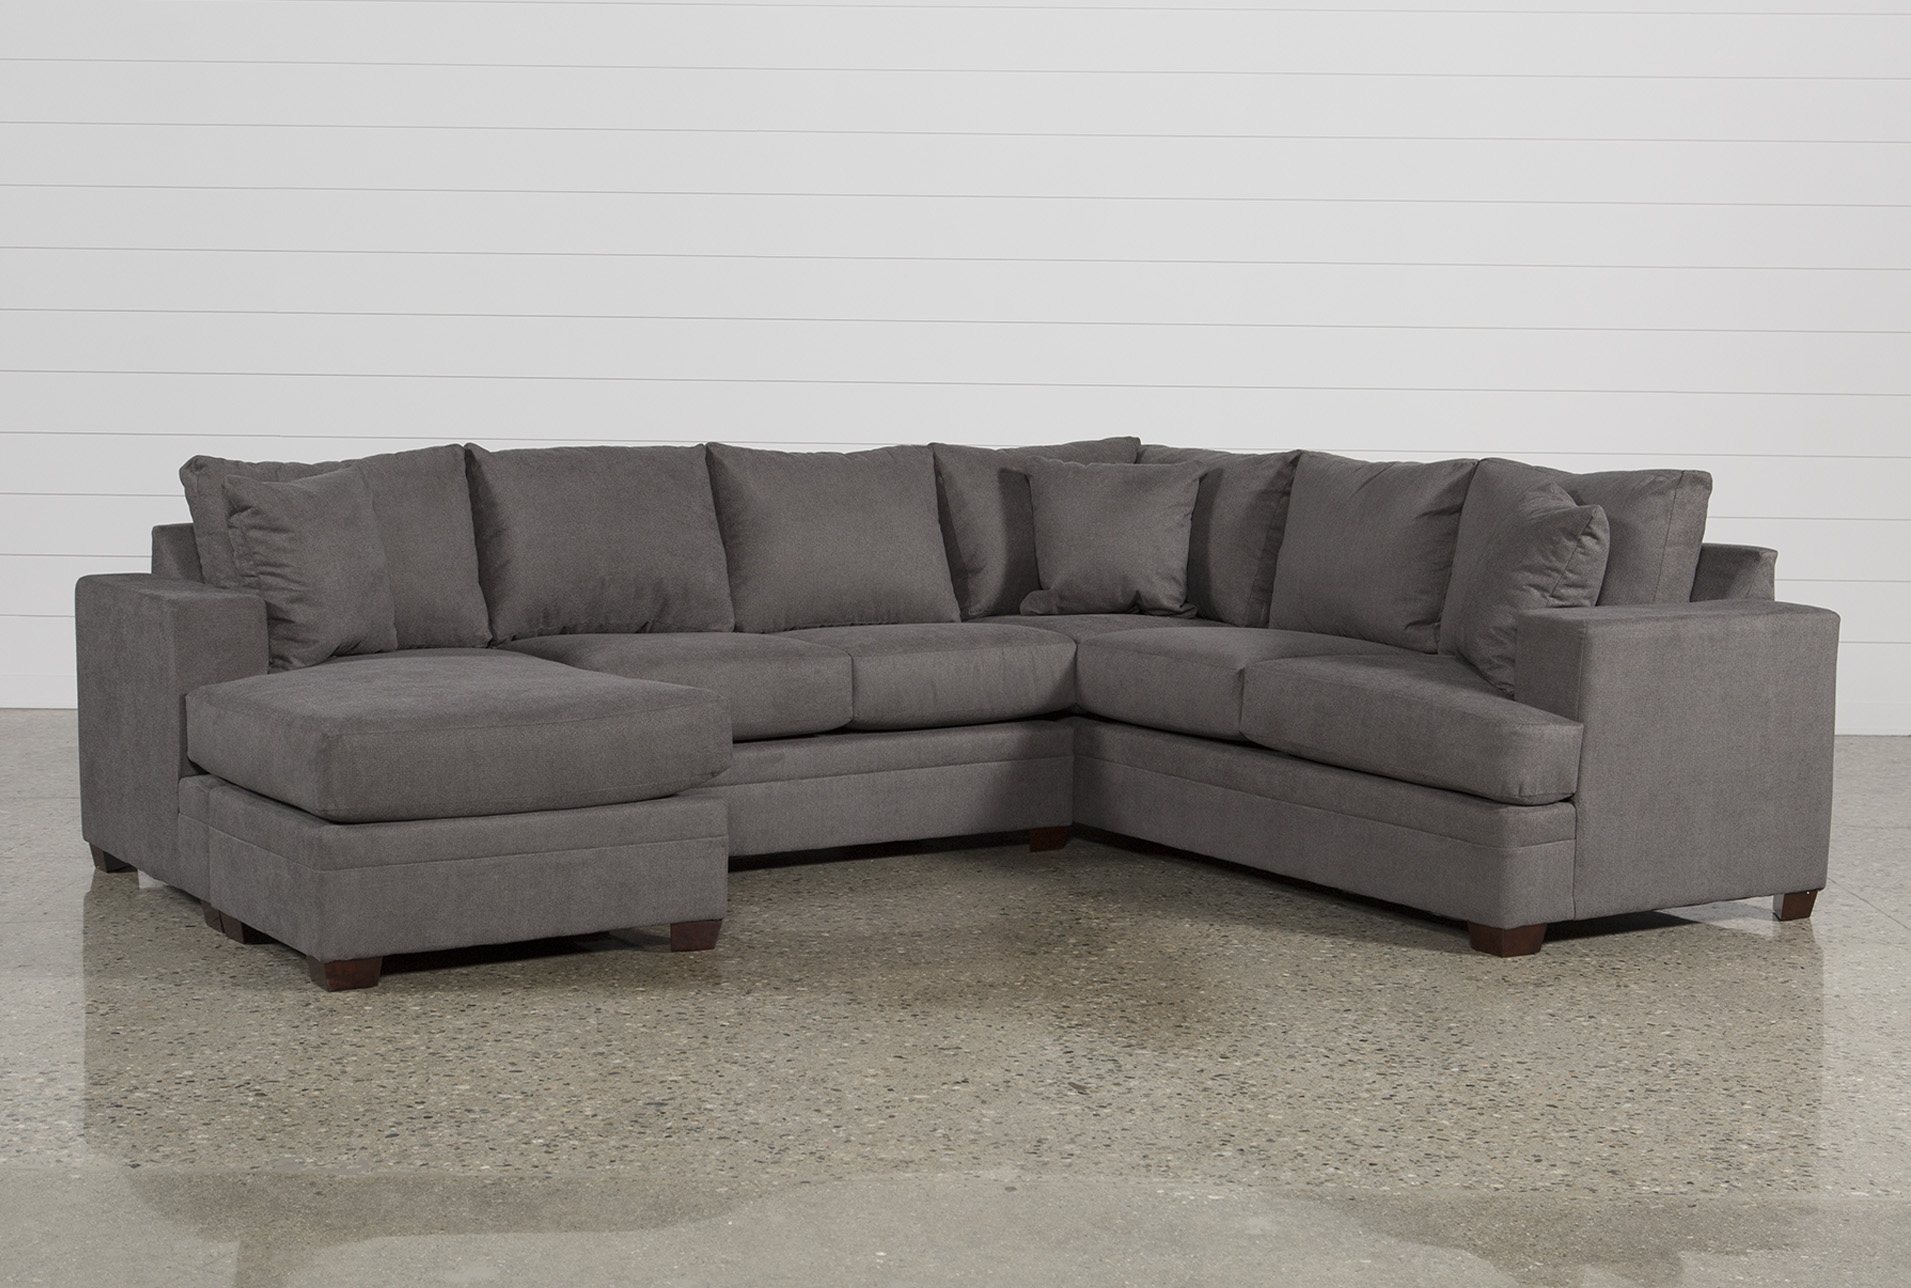 sectional sofa couch large sofas costco sectionals living spaces kerri 2 piece w laf chaise